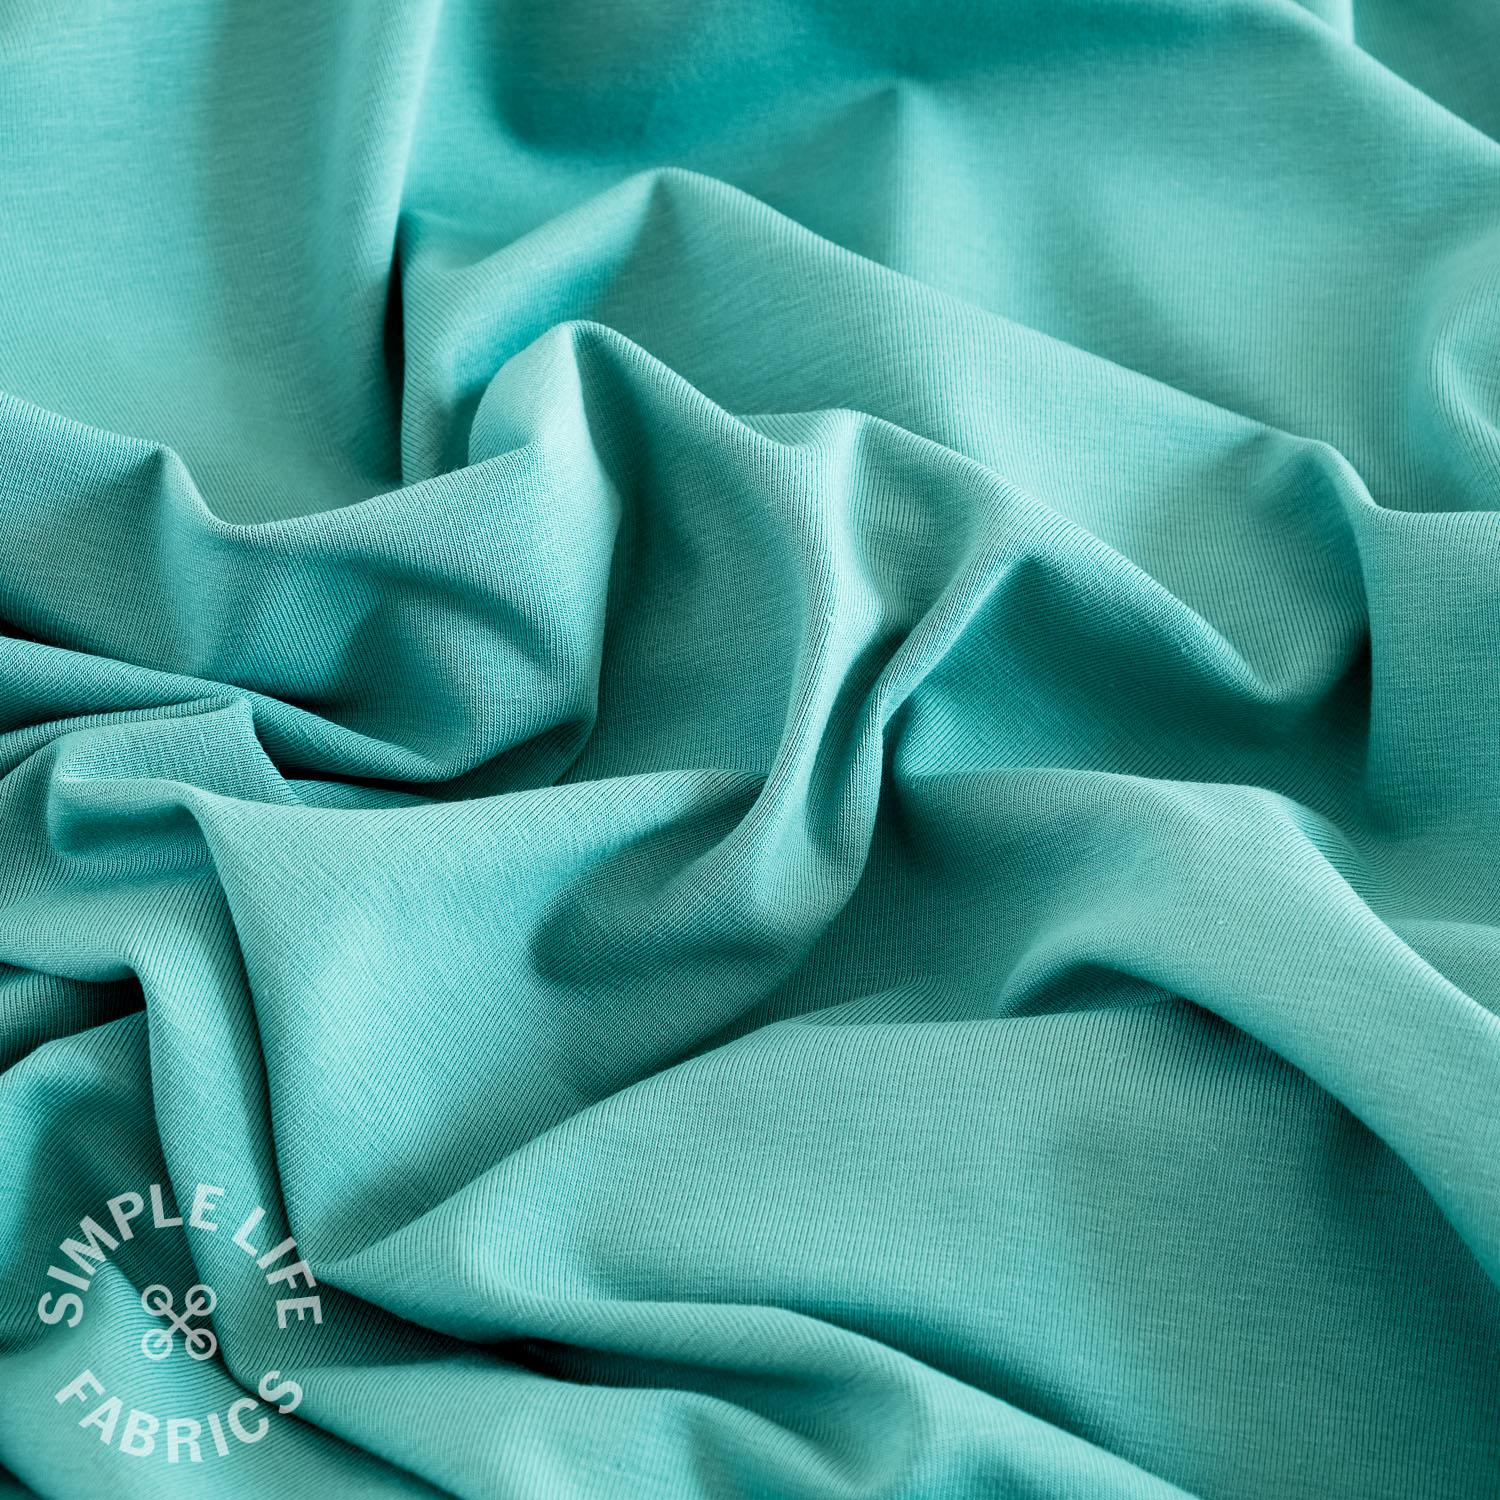 Organic plain solid green cotton jersey fabric